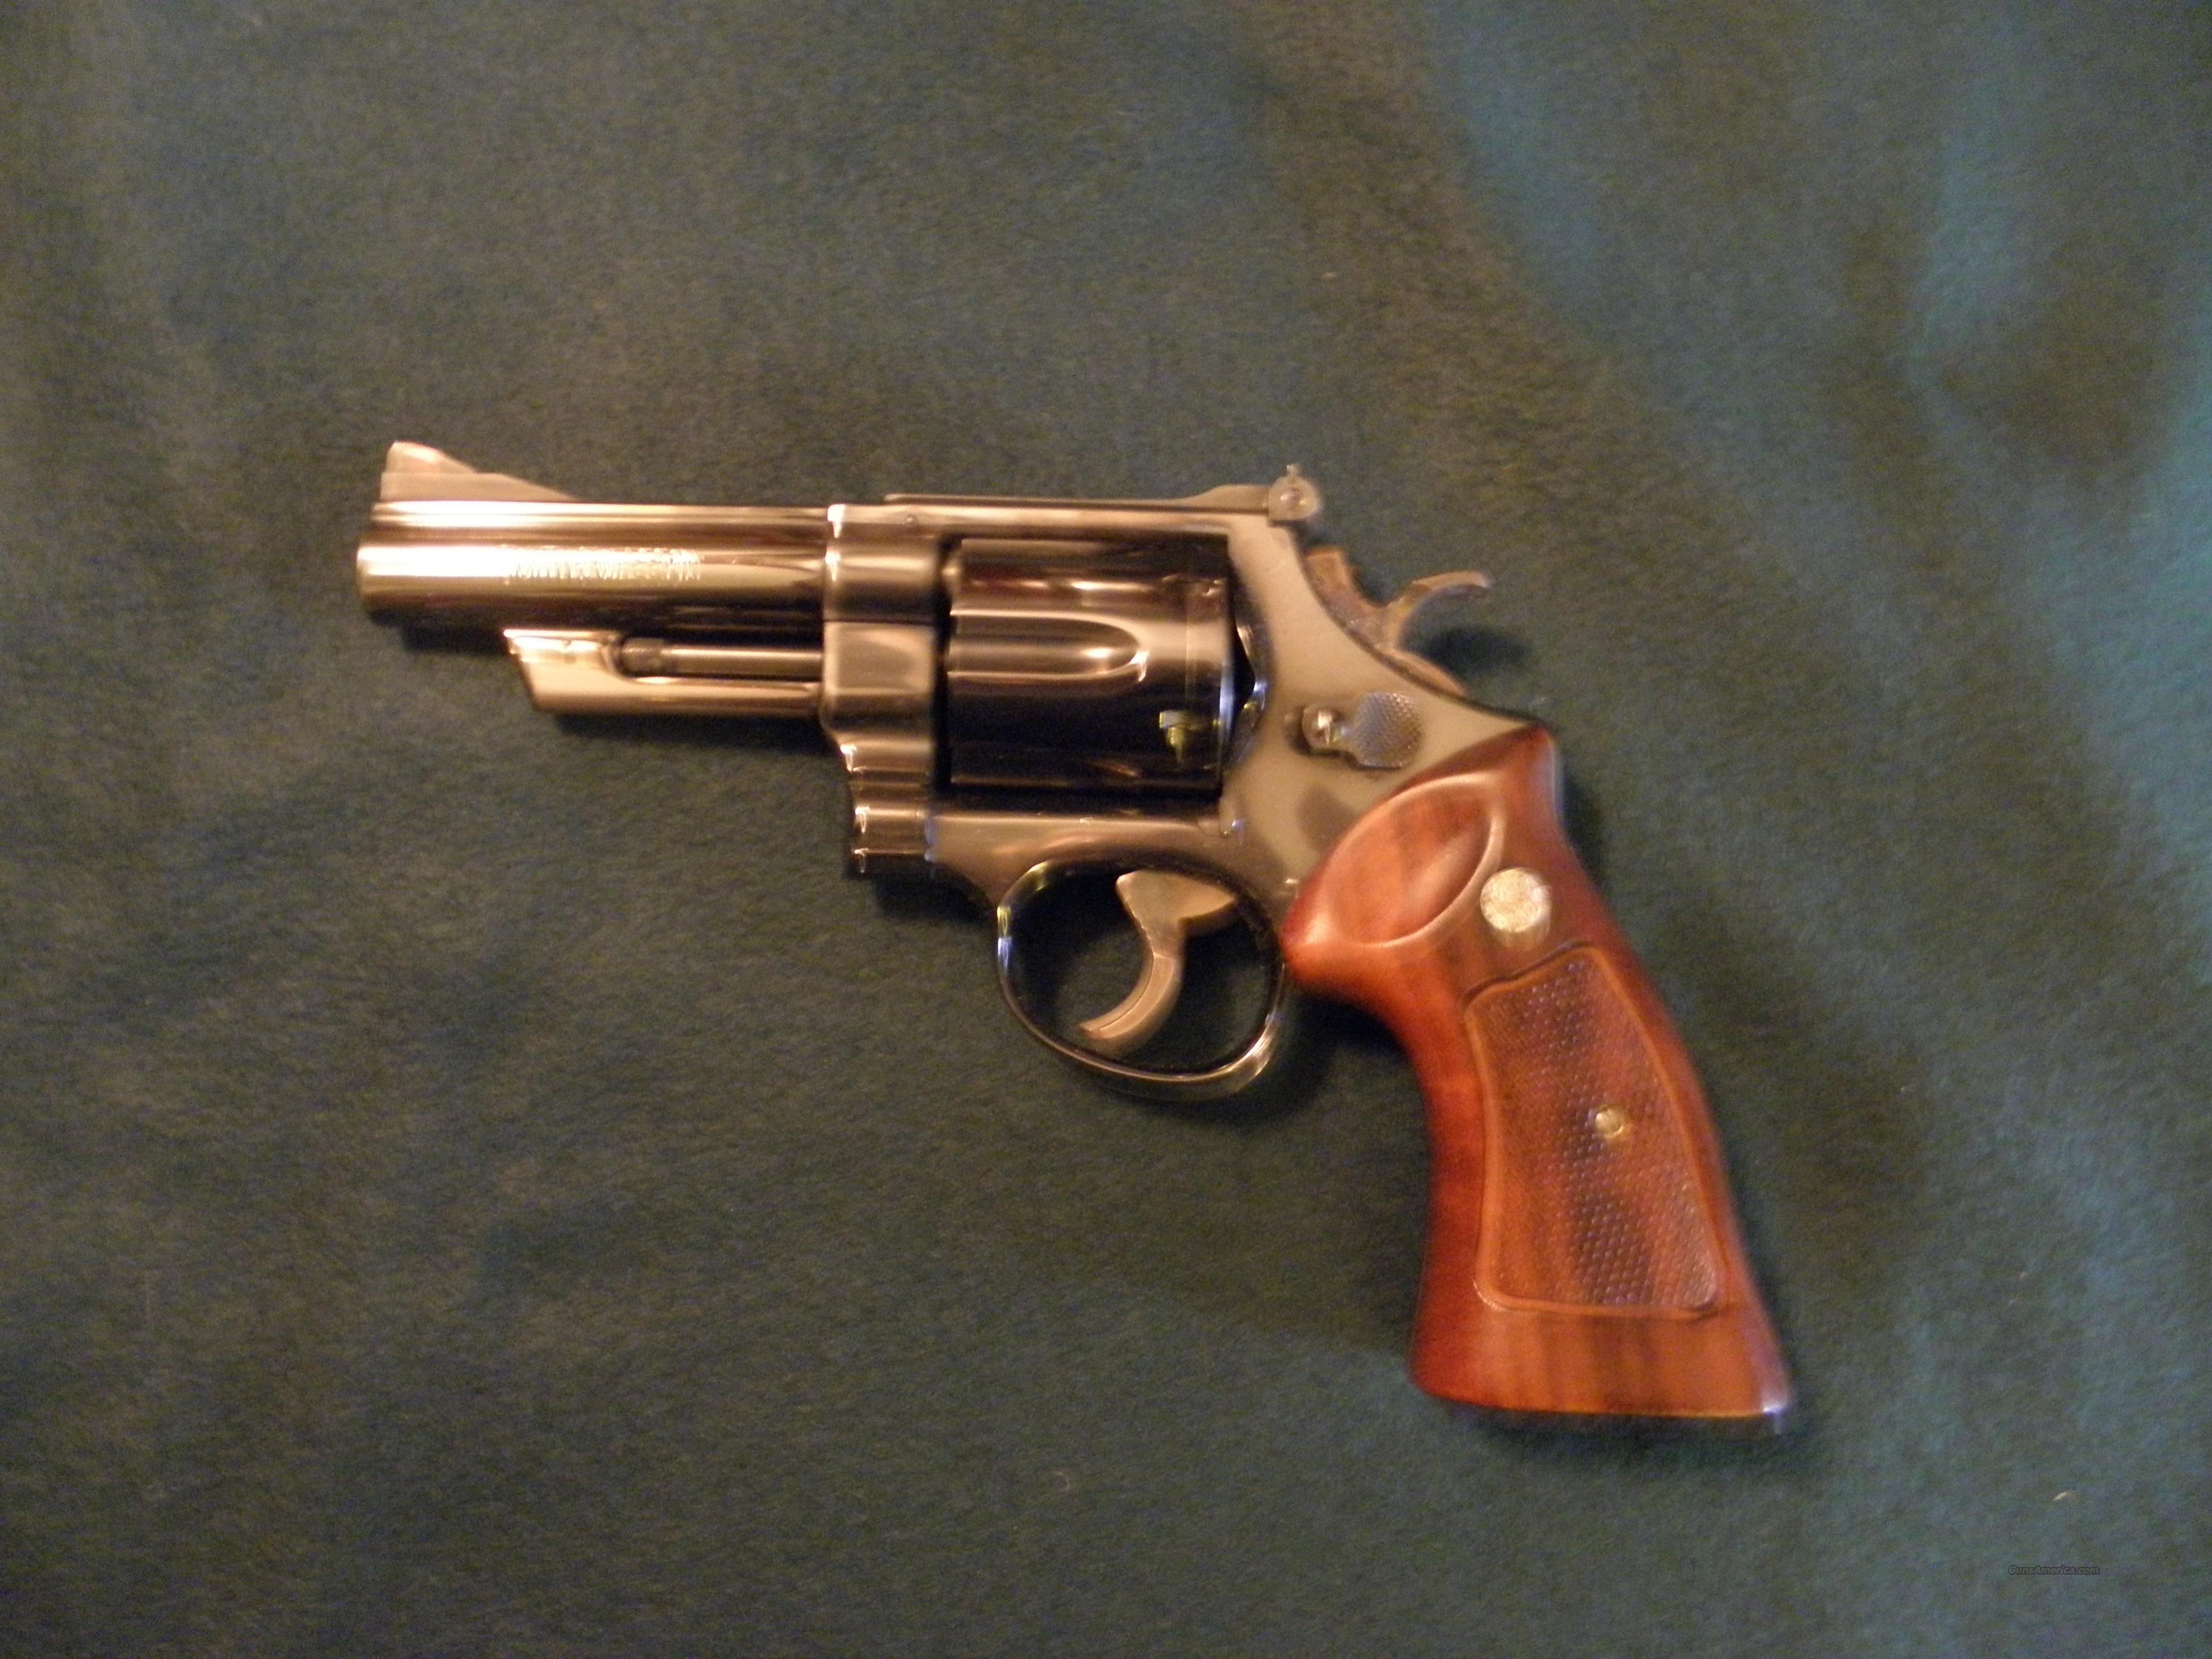 Smith & Wesson Model 57 Cal. 41 Rem Mag  Guns > Pistols > Smith & Wesson Revolvers > Full Frame Revolver